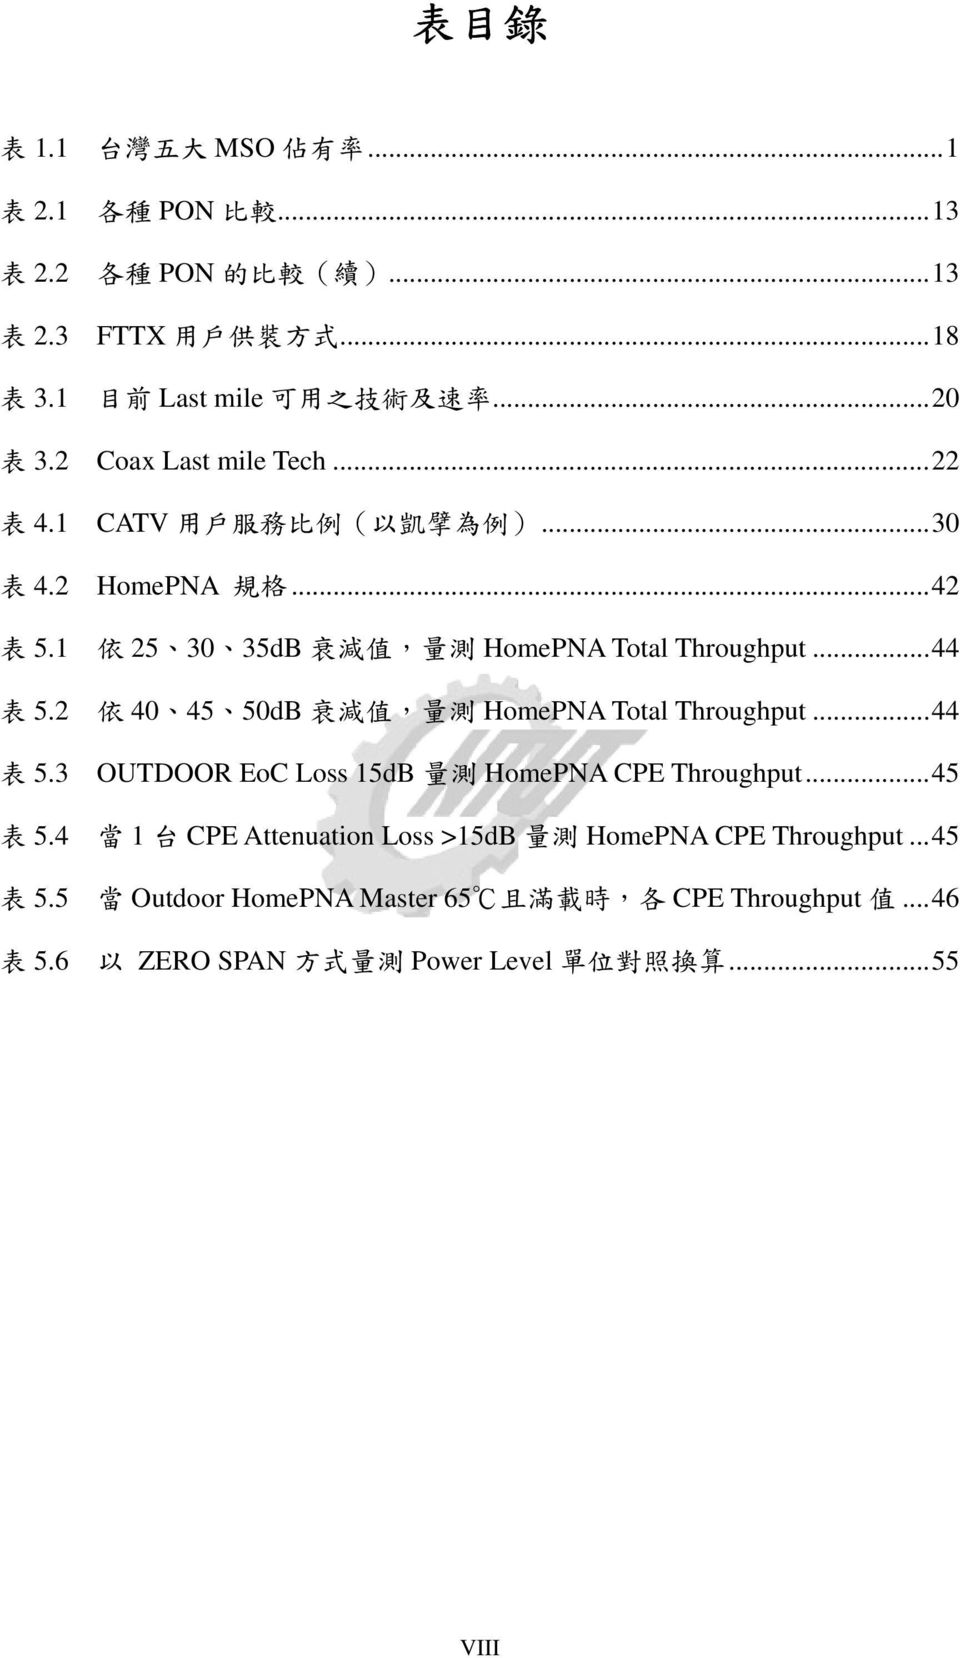 2 404550dB 量 HomePNA Total Throughput...44 5.3 OUTDOOR EoC Loss 15dB 量 HomePNA CPE Throughput...45 5.